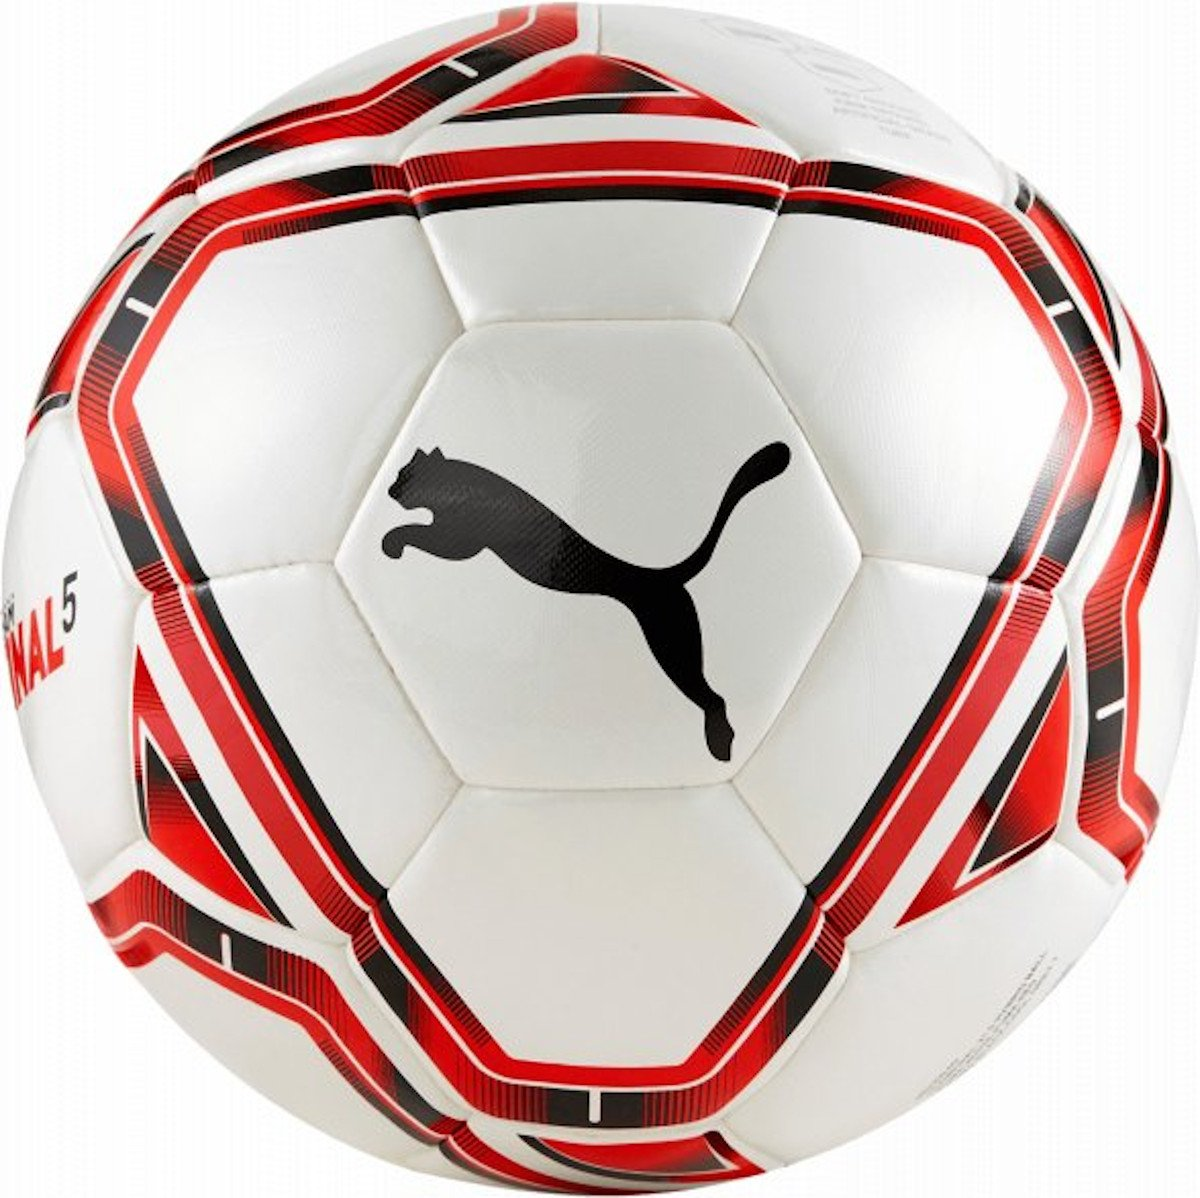 Ballon Puma teamFINAL 21.5. Hybrid Ball